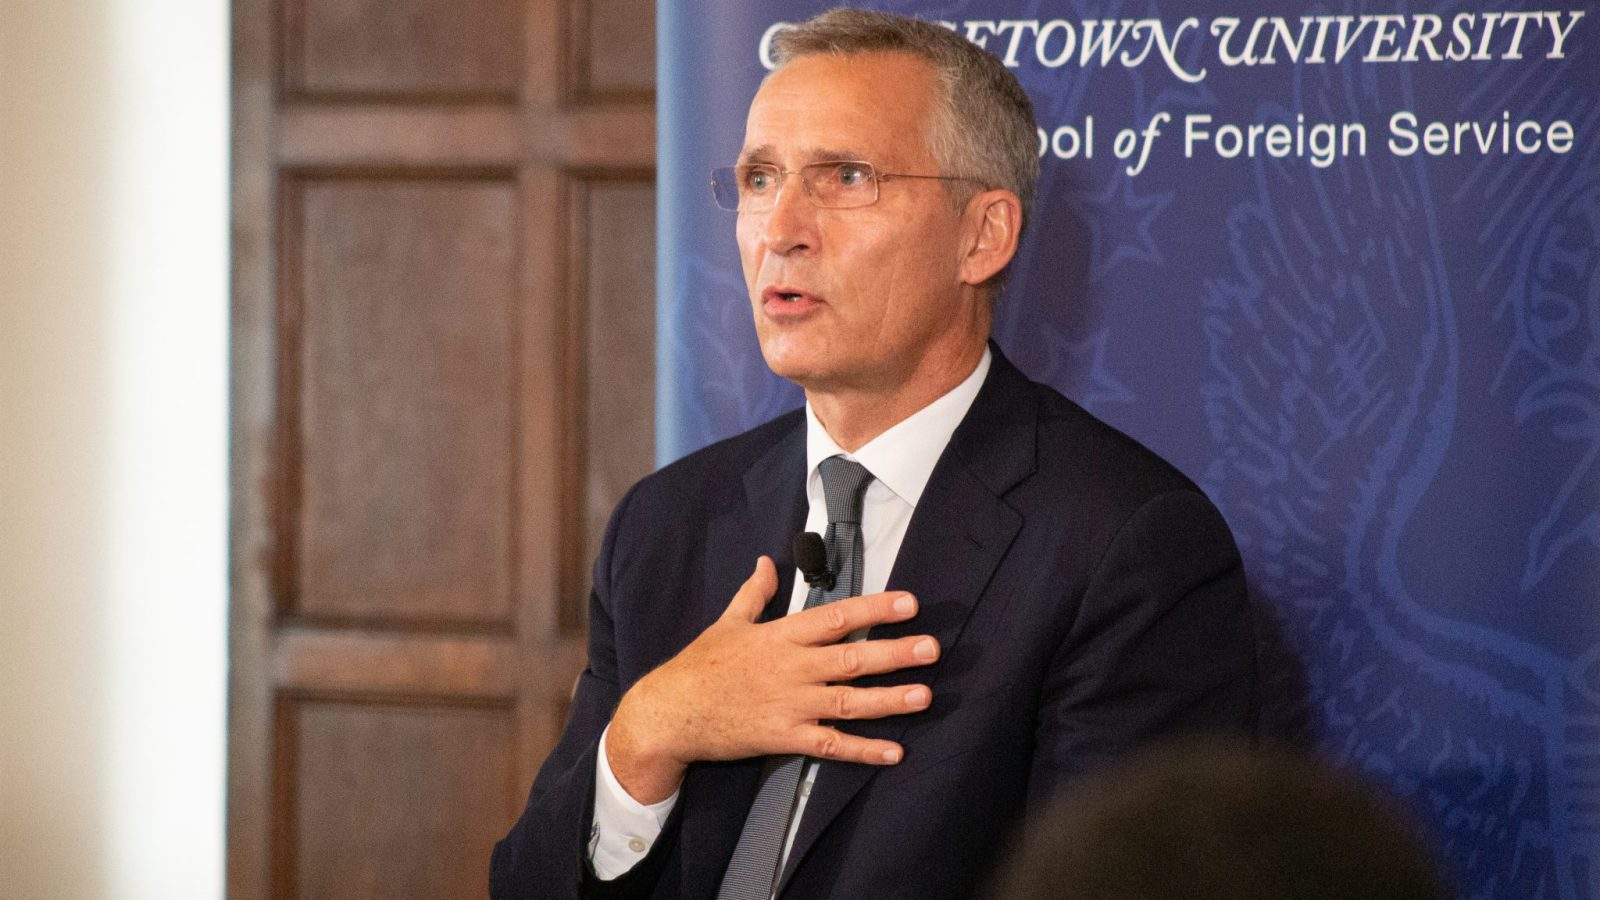 NATO Secretary General Jens Stoltenberg speaks at the Walsh School of Foreign Service's Oct. 5 event.